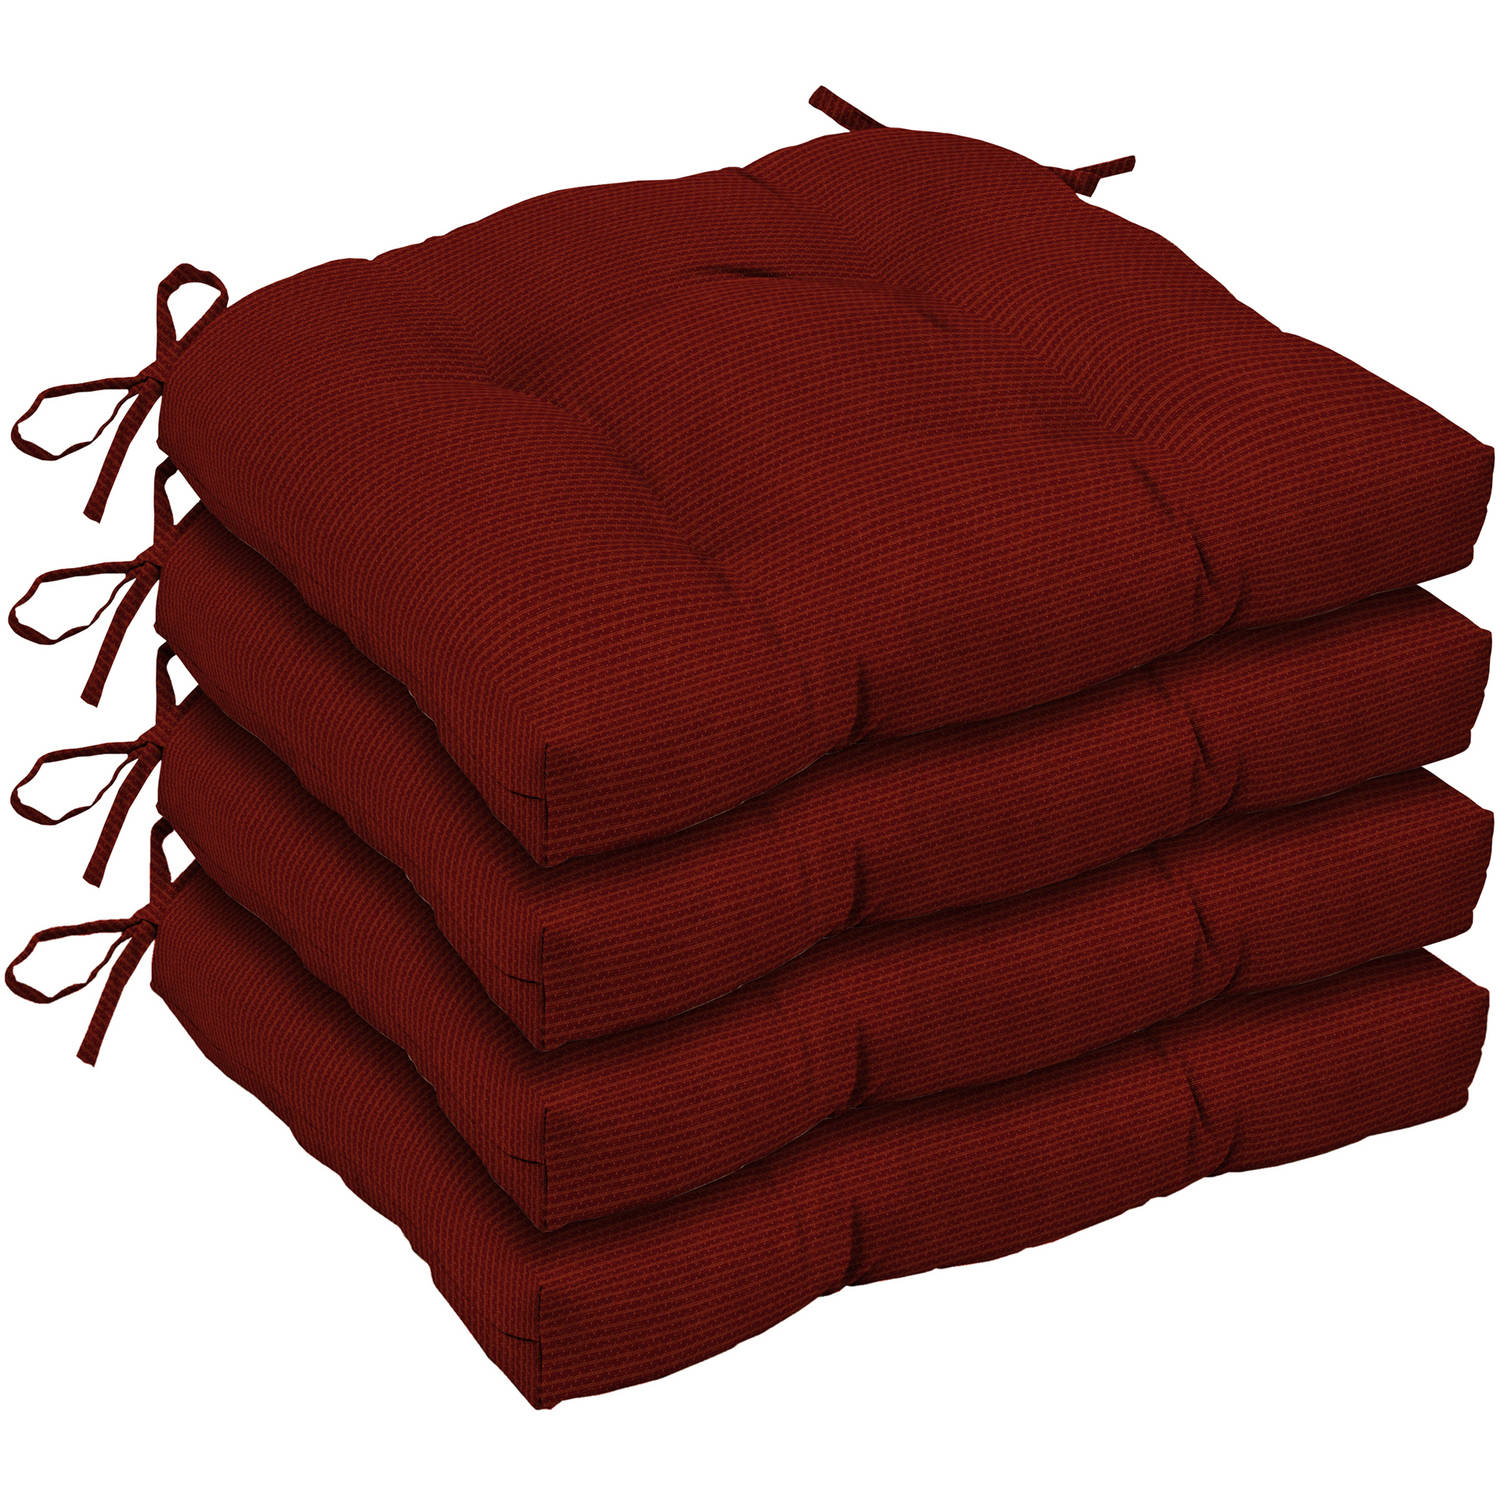 Arden Outdoors Red Rib Woven Wicker Seat Cushion, Set of 4